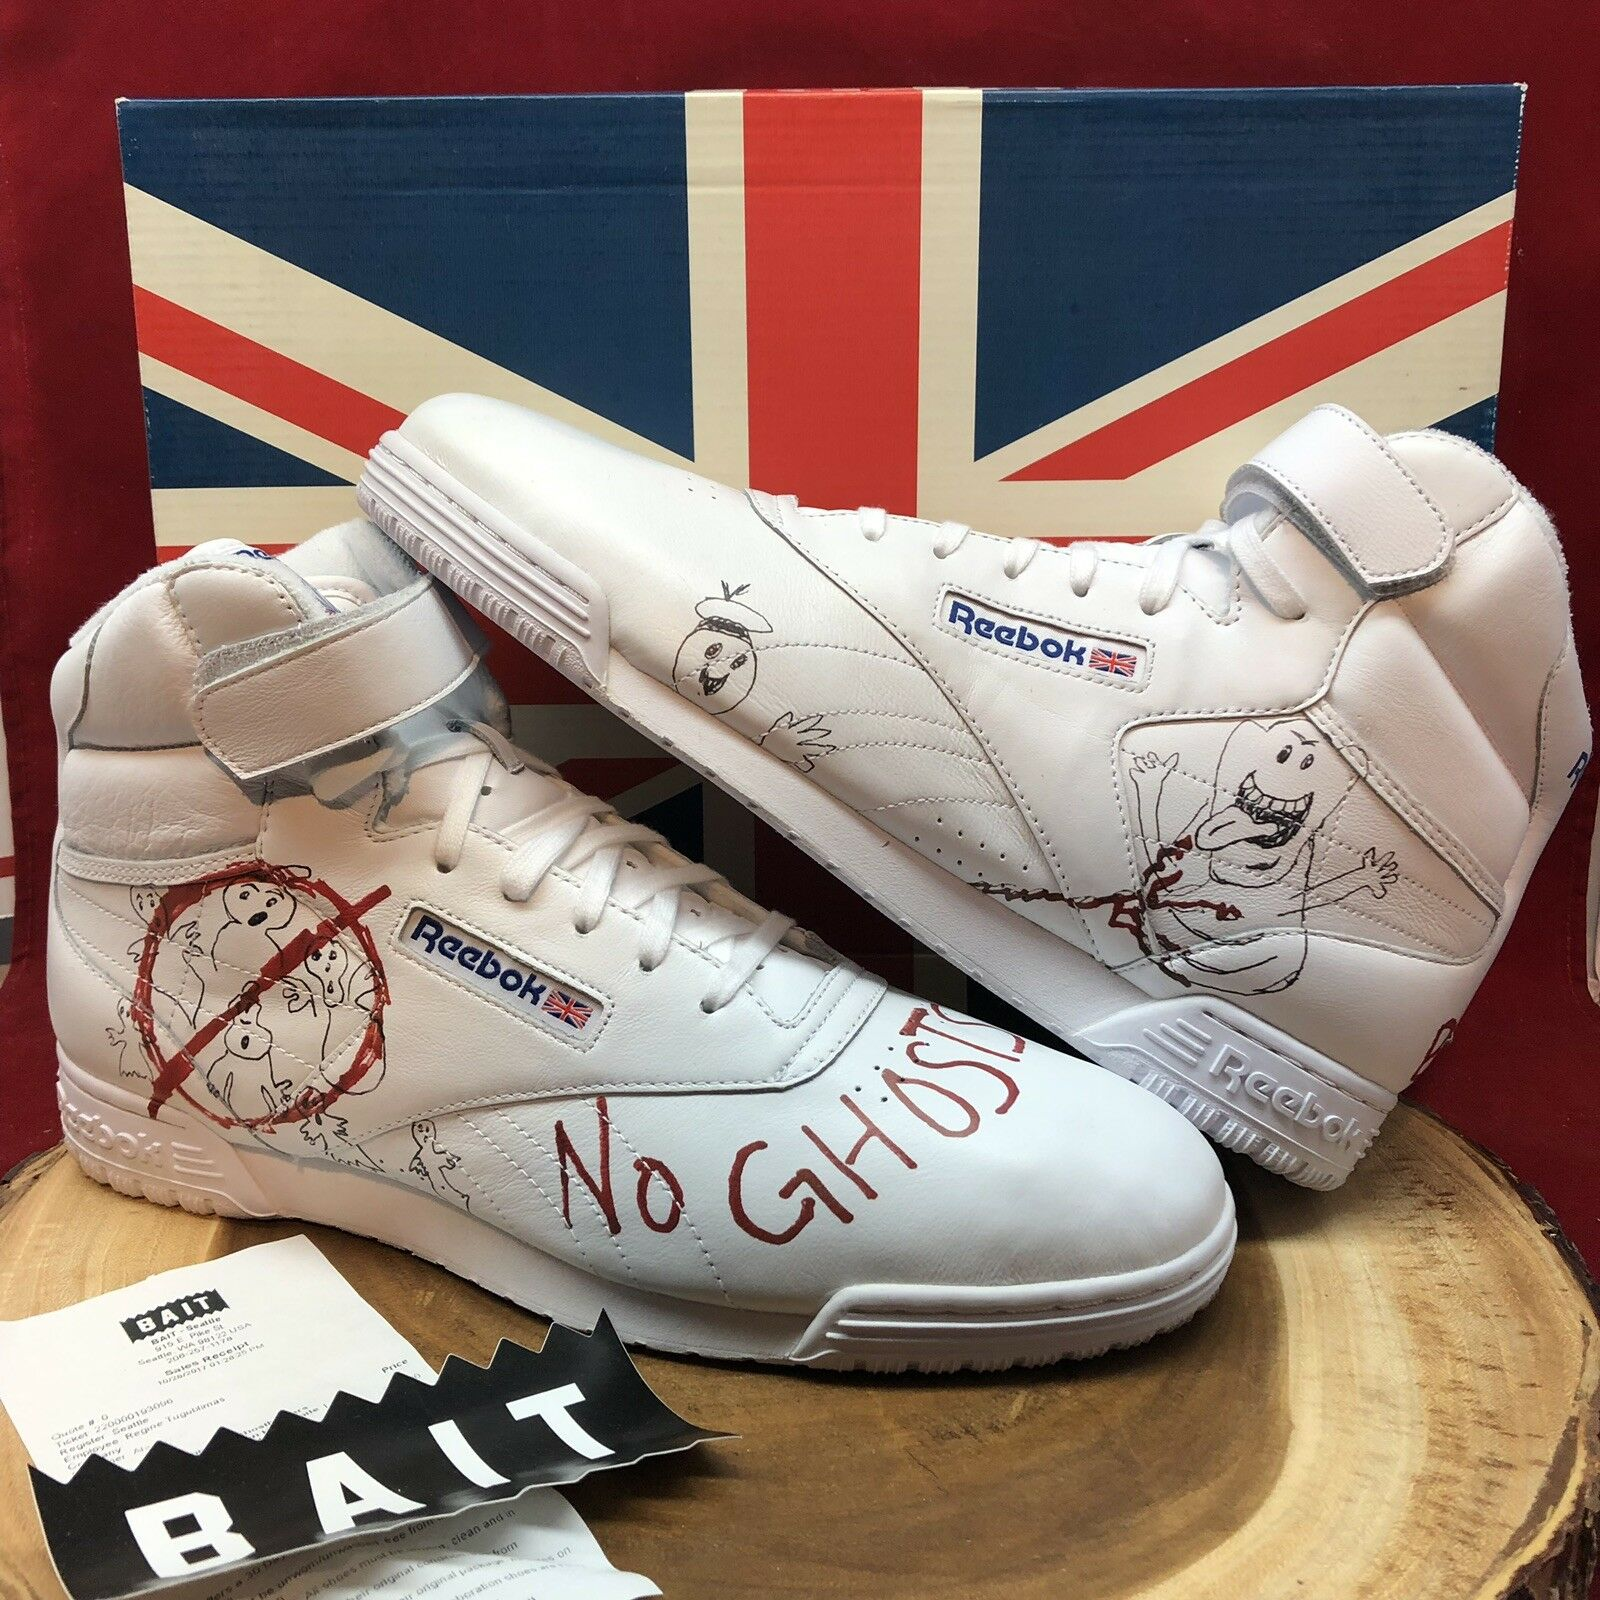 Reebok x Bait Ex-o-fit Stranger Things Ghostbusters ComplexCon limited size 13